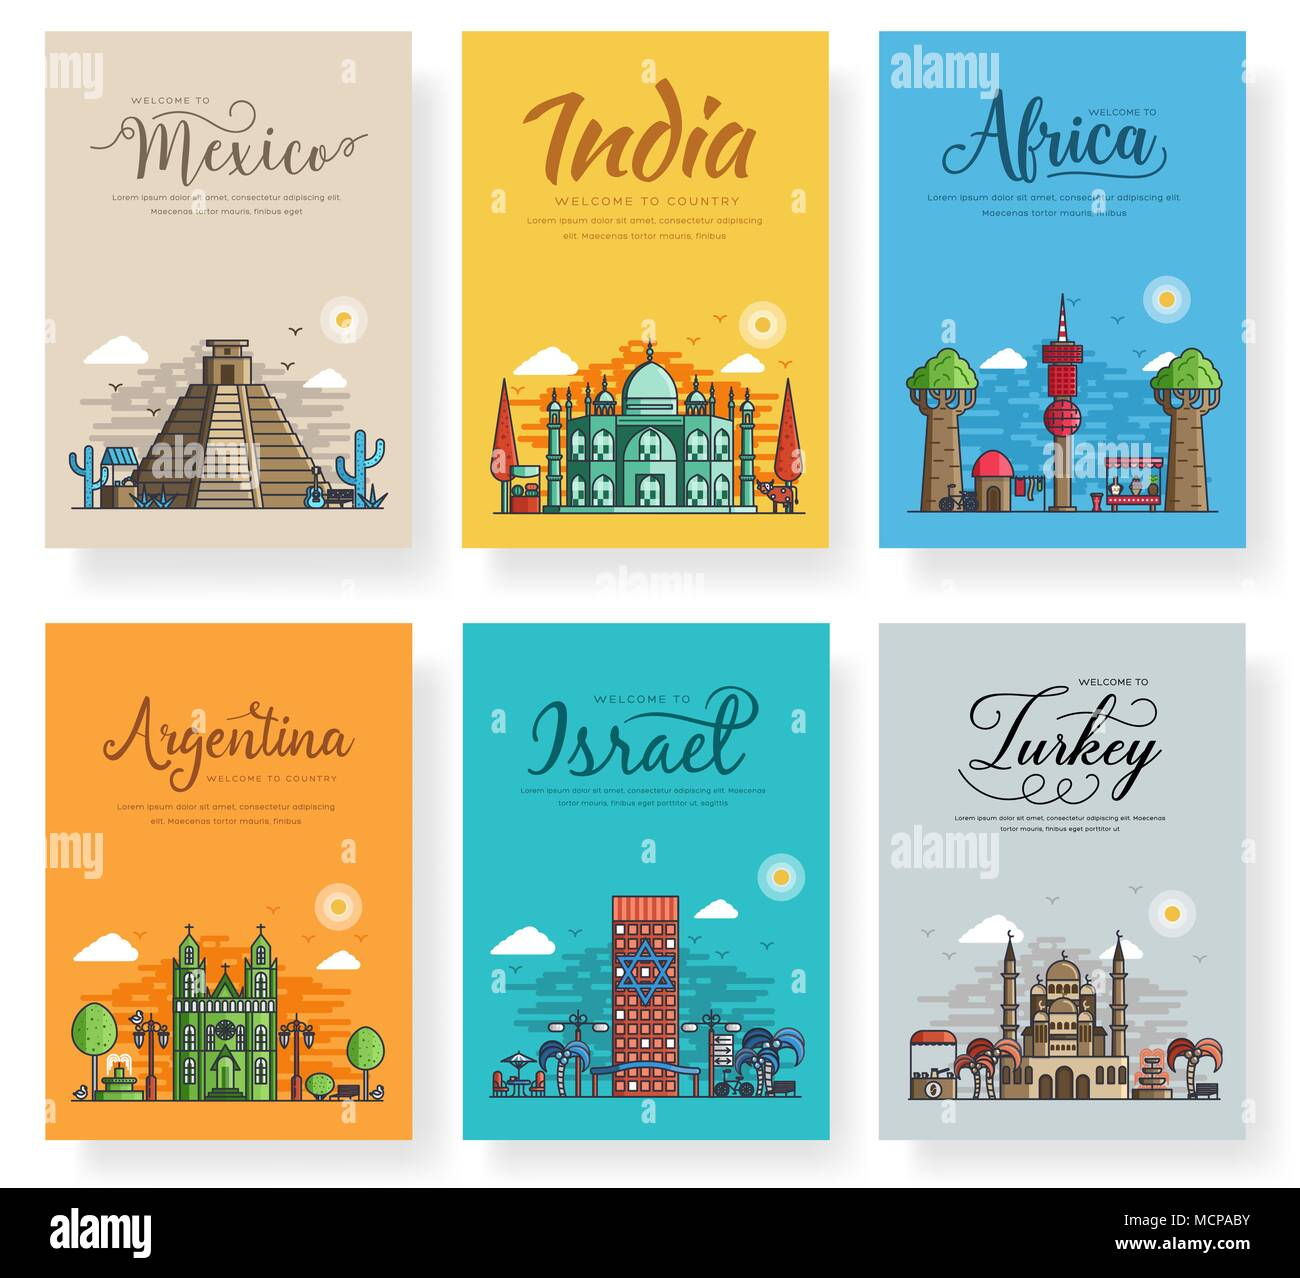 Adventure Book Cover Stockfotos & Adventure Book Cover Bilder - Alamy